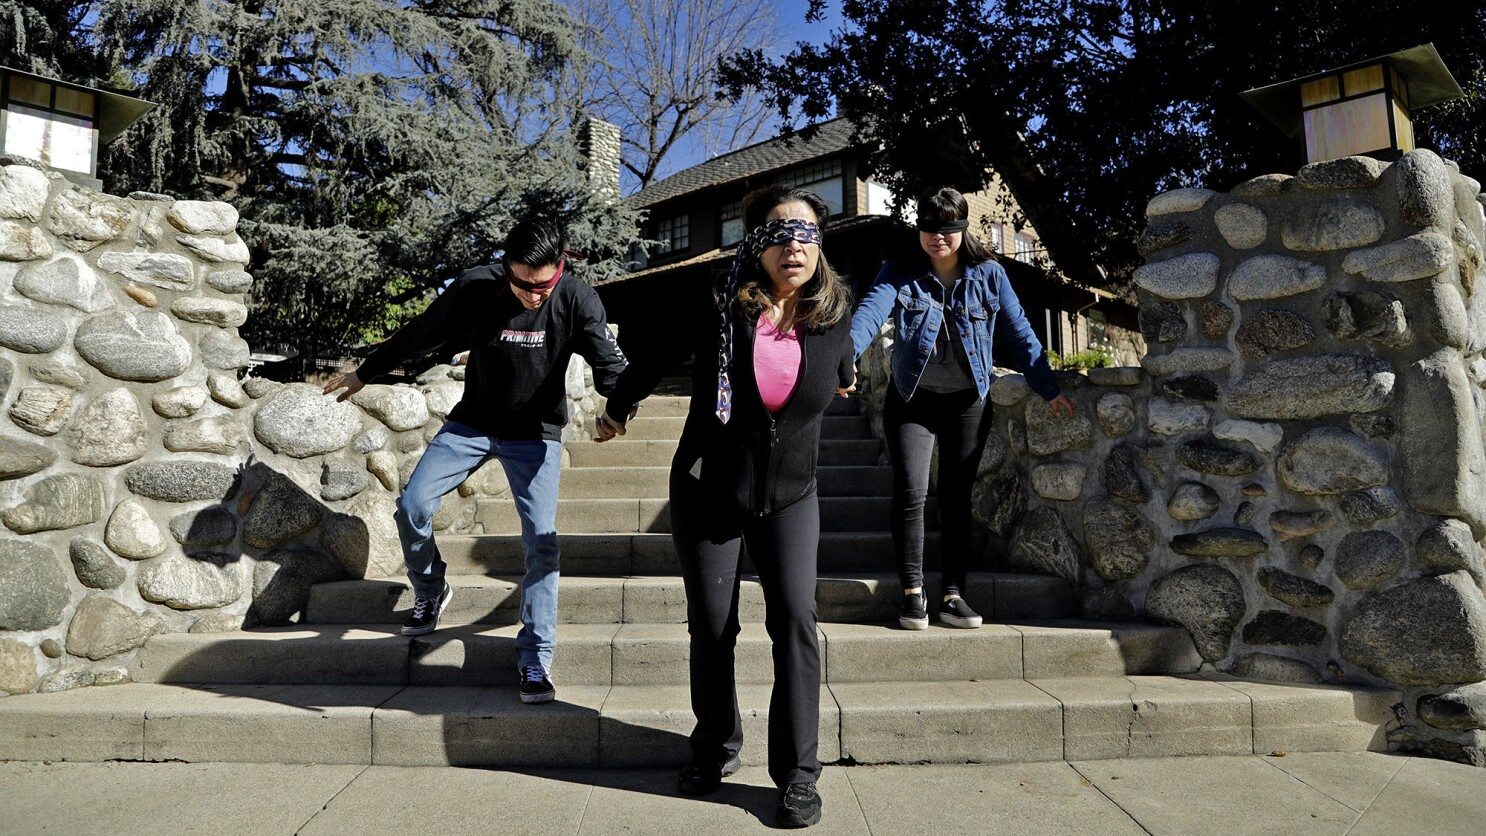 Bird box challenge my family pies Fans Flock To Bird Box House In Monrovia To Pose In Photos As Craze Over Film Soars Los Angeles Times